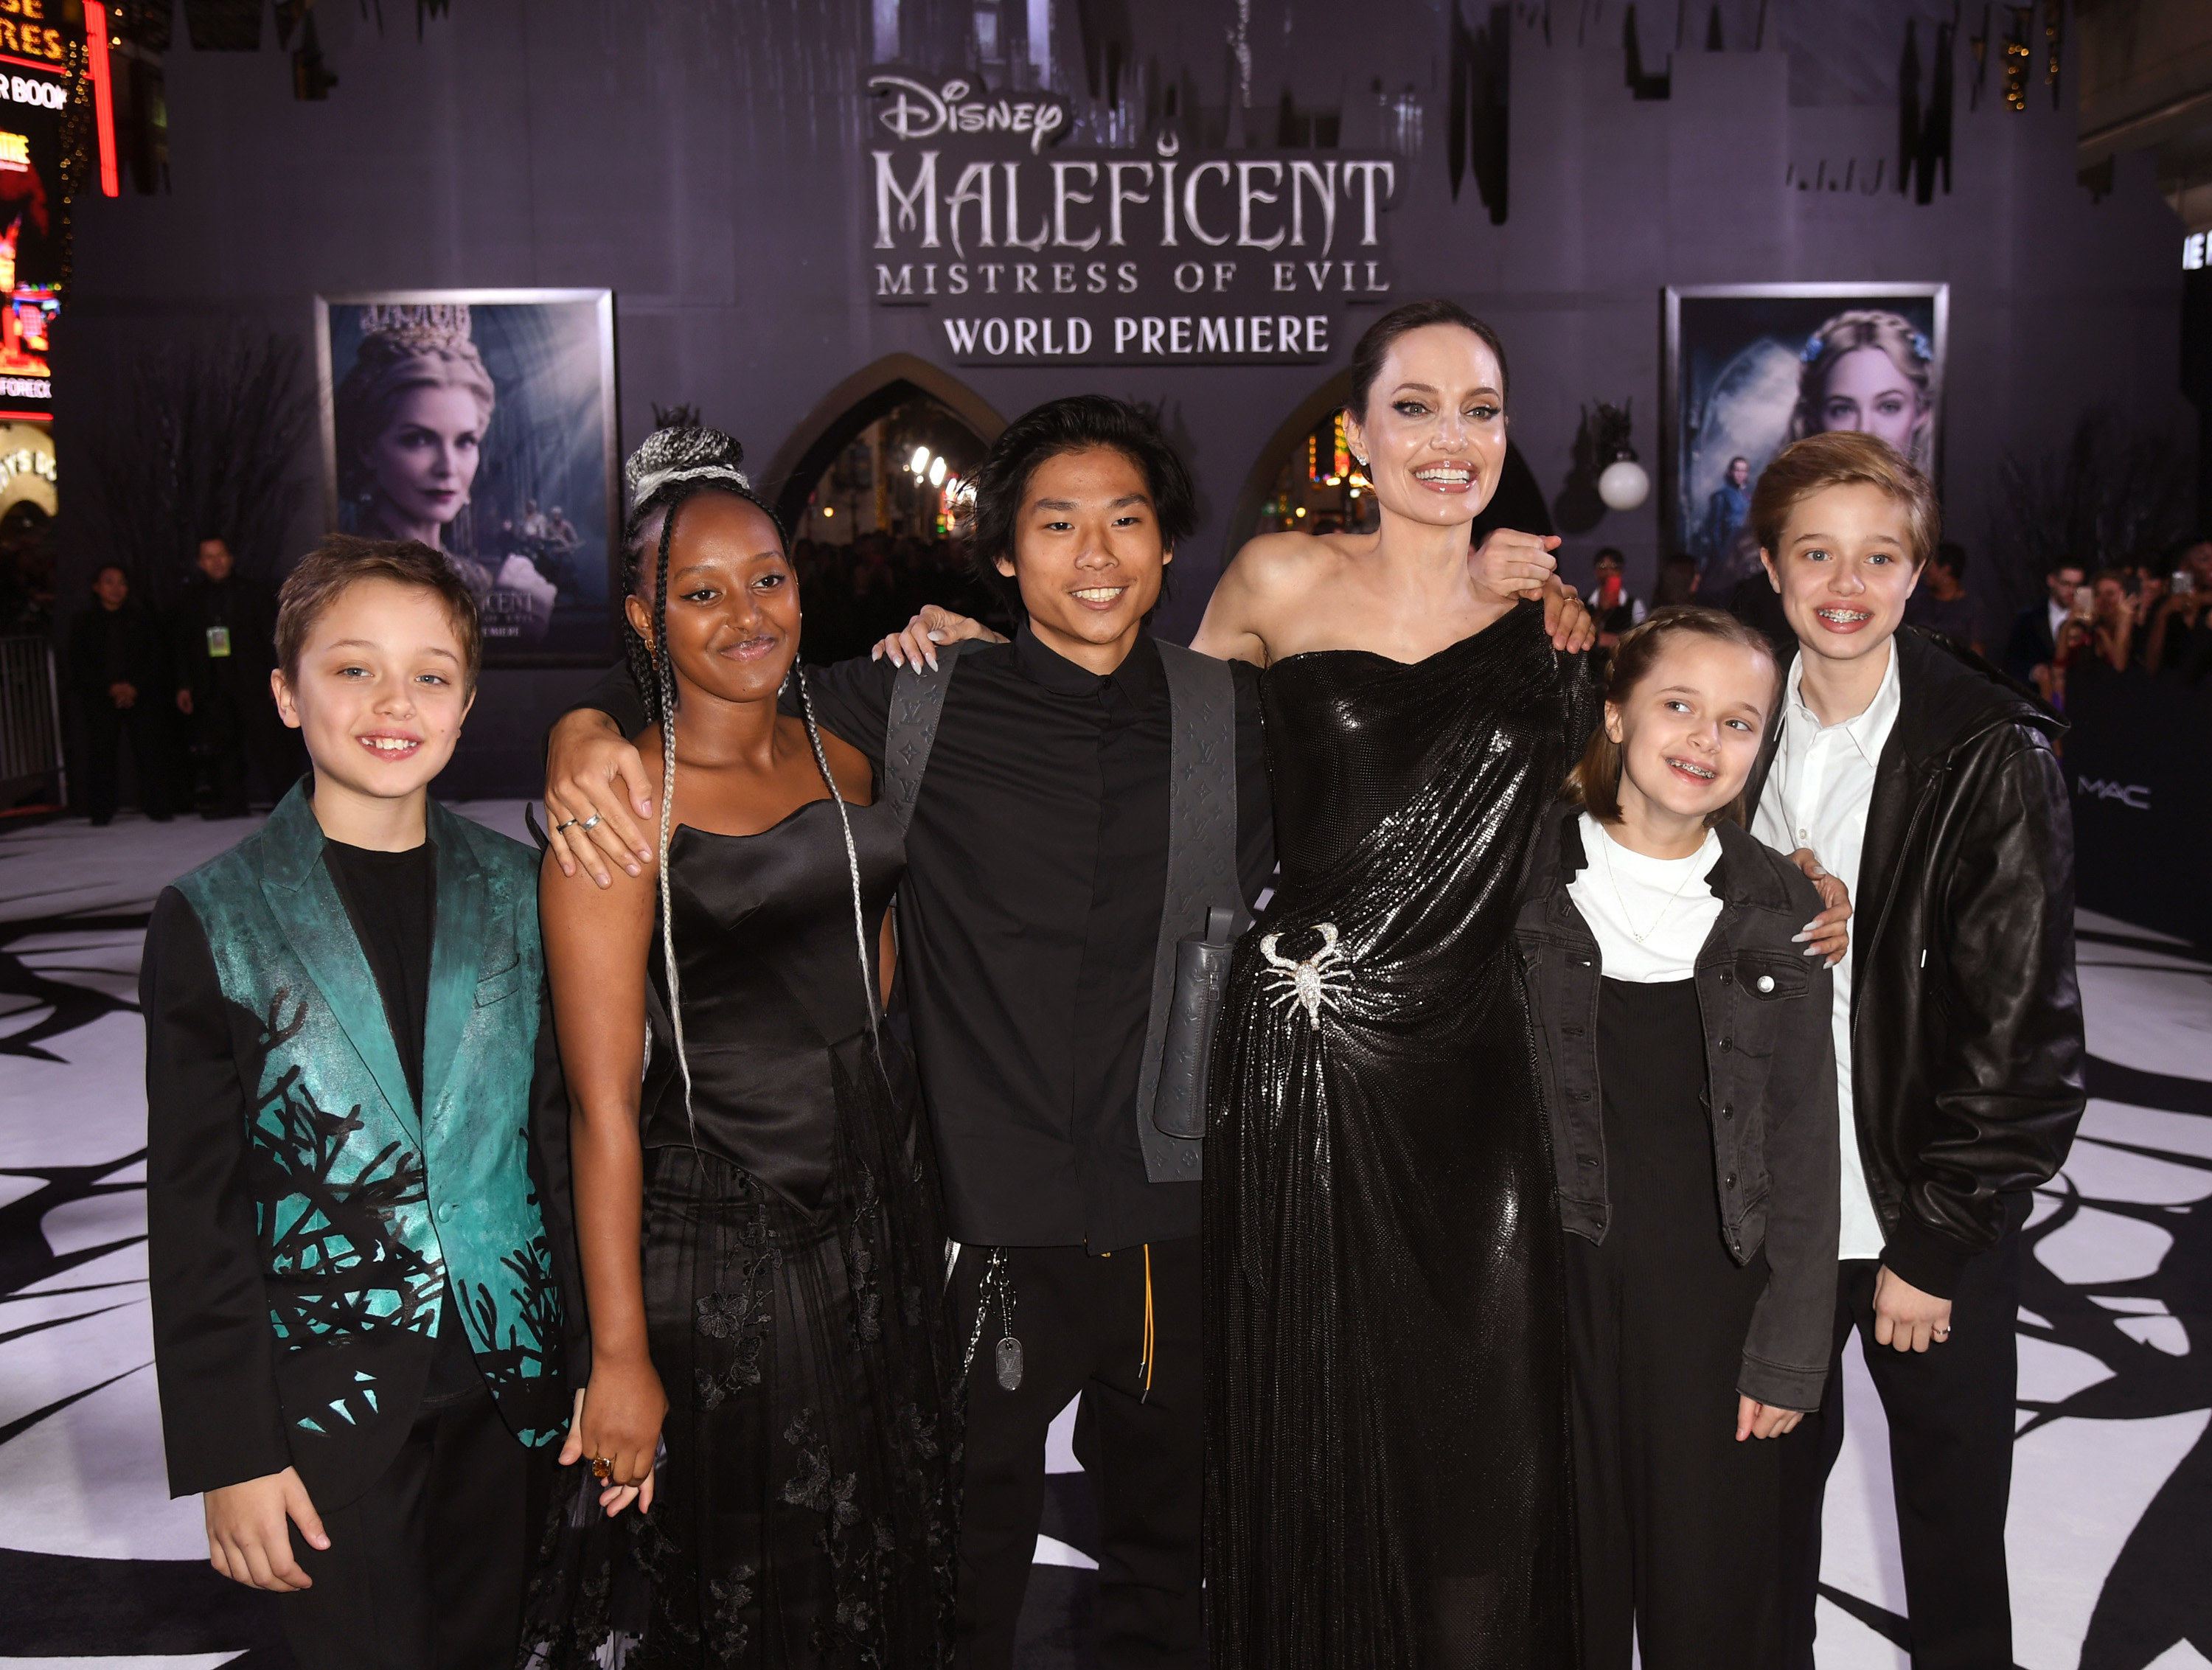 Angelina with five of her children at the Maleficent world premiere